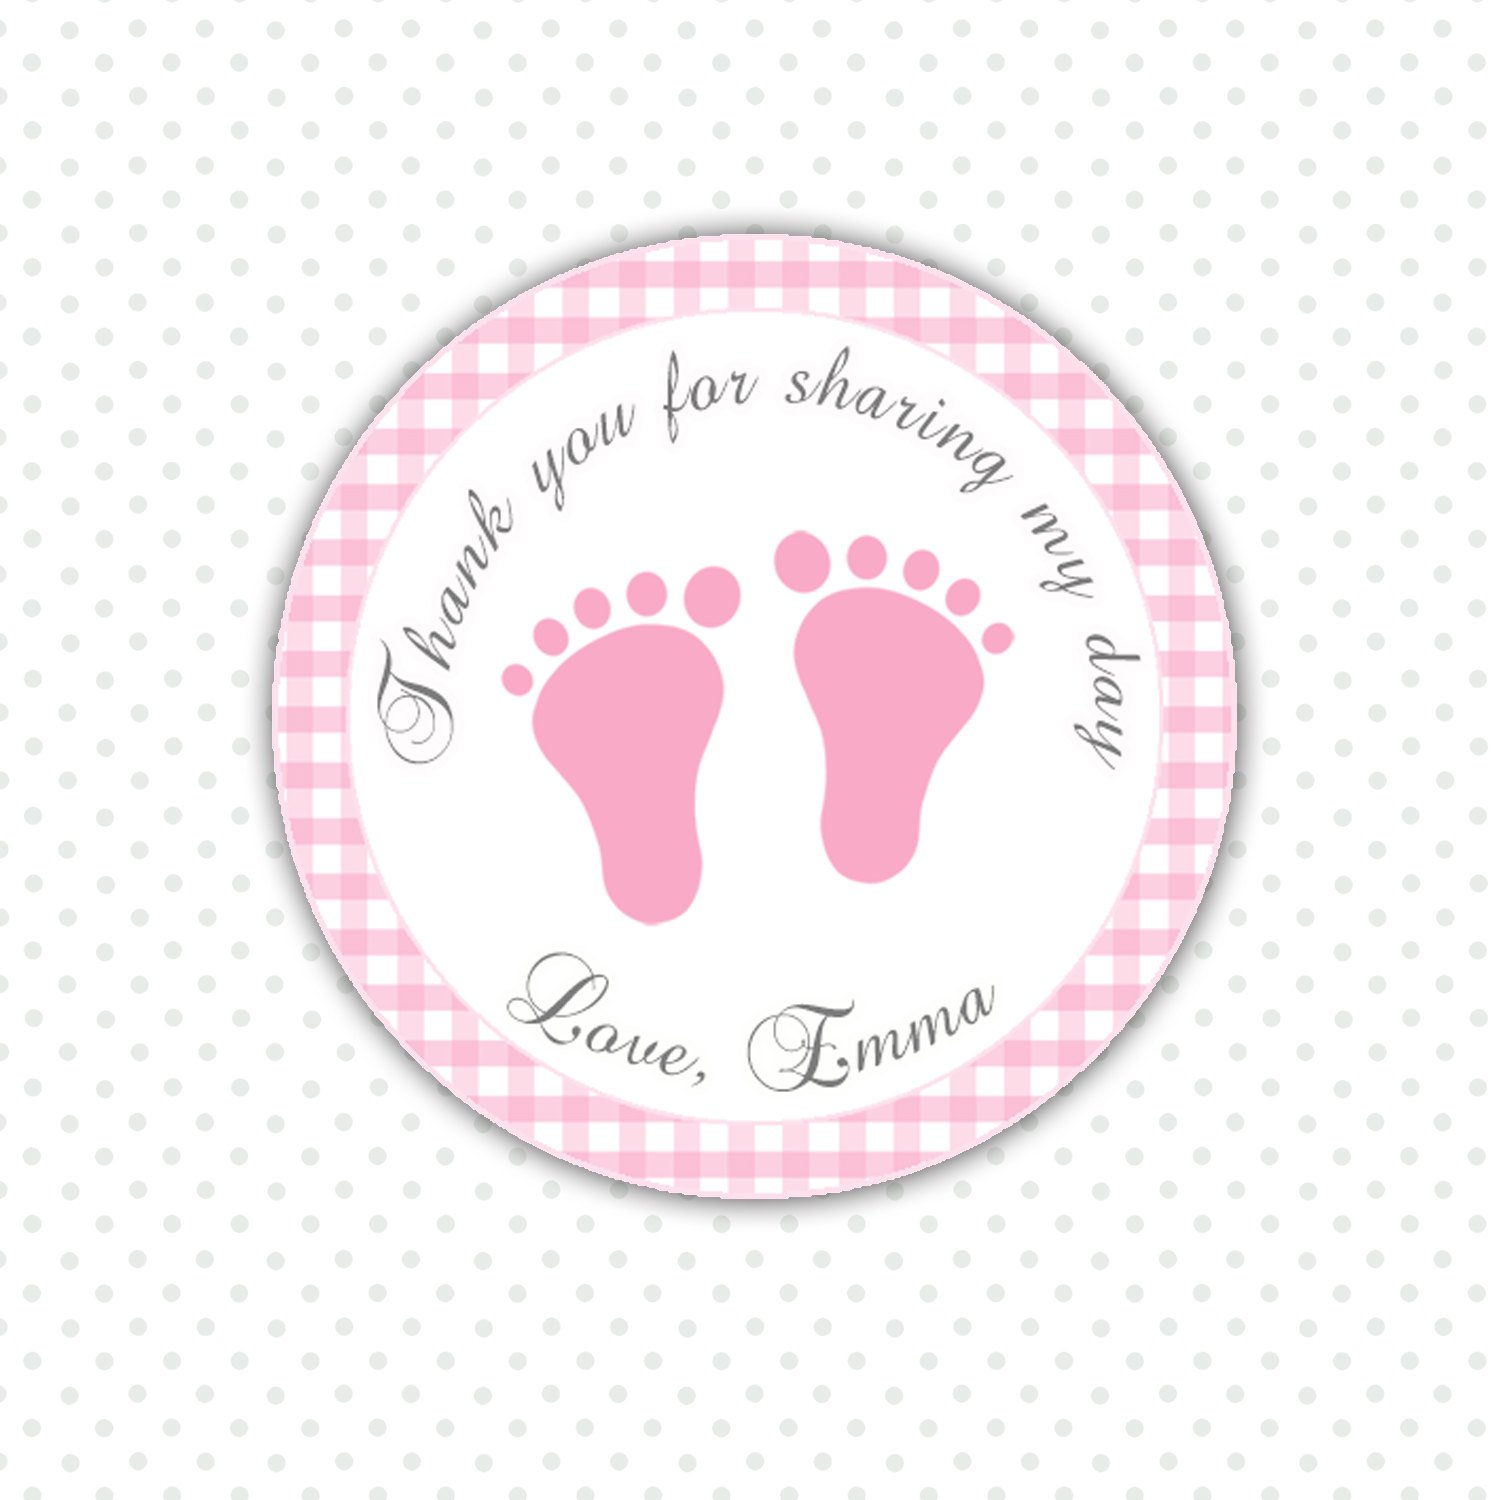 Printable Labels For Baby Shower Favors Baby Showers Design